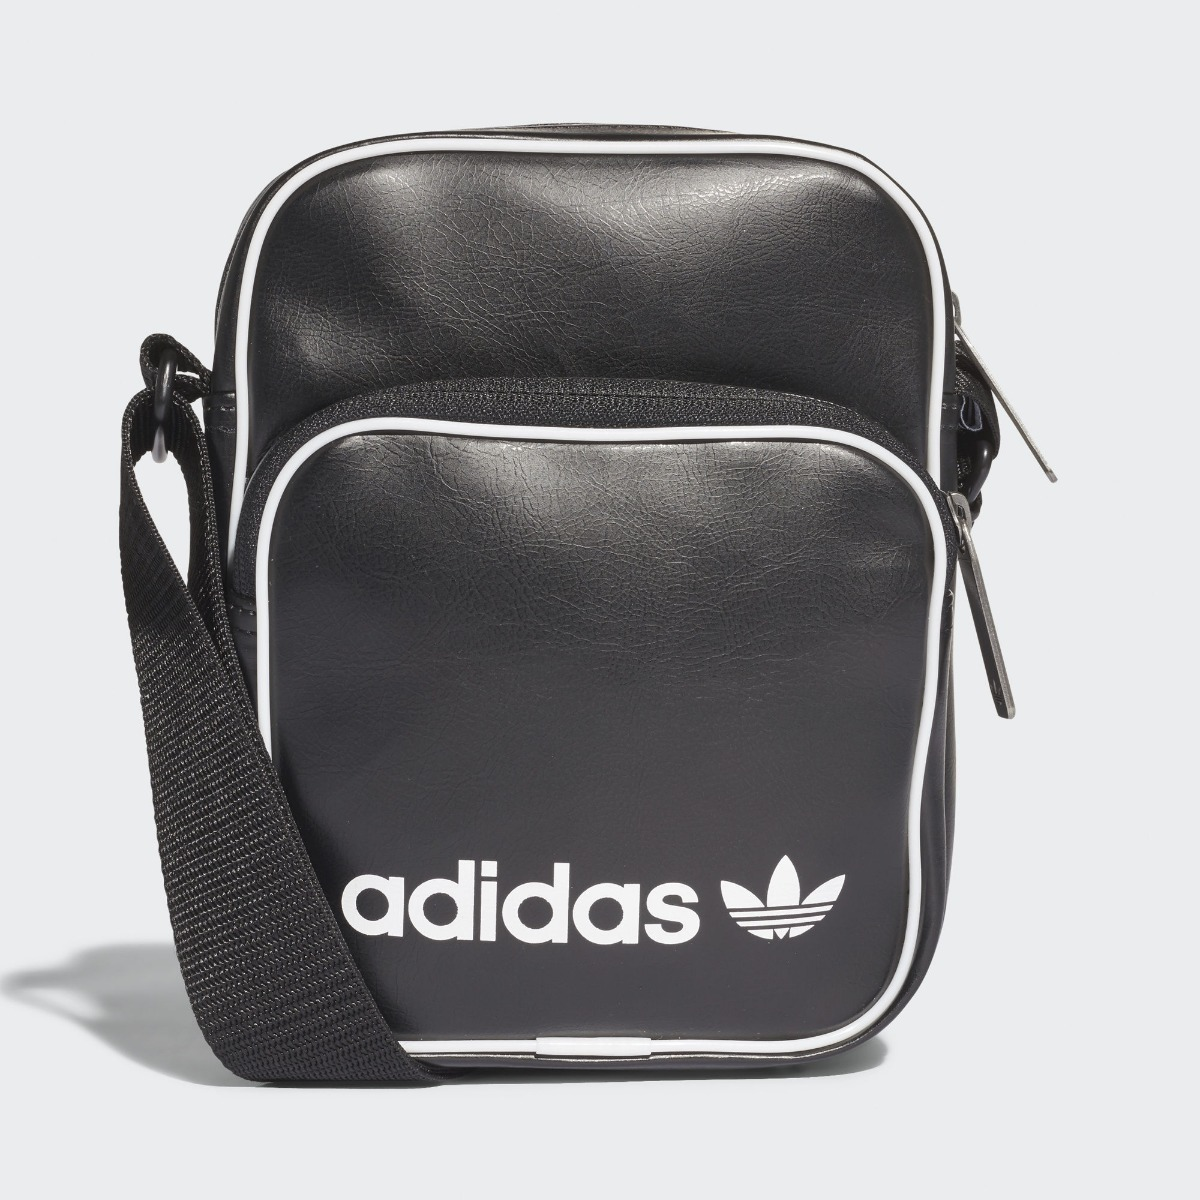 En Bag Vint 60 Originals 000 Bolso Mini Carriel Adidas wqgxF48vf